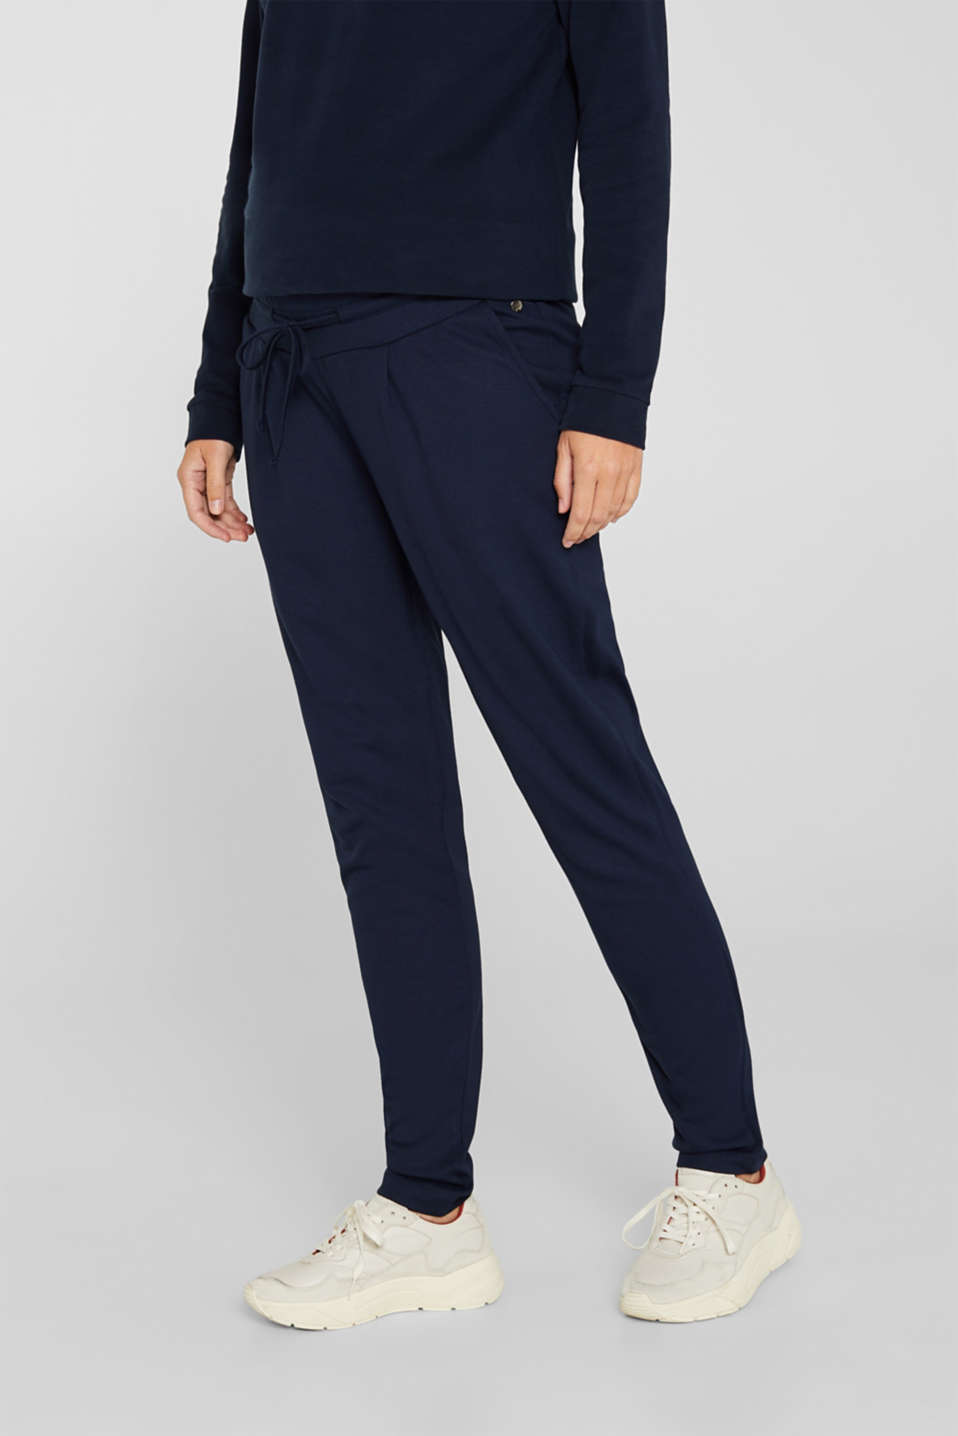 Esprit - Stretch jersey trousers with under-bump waistband